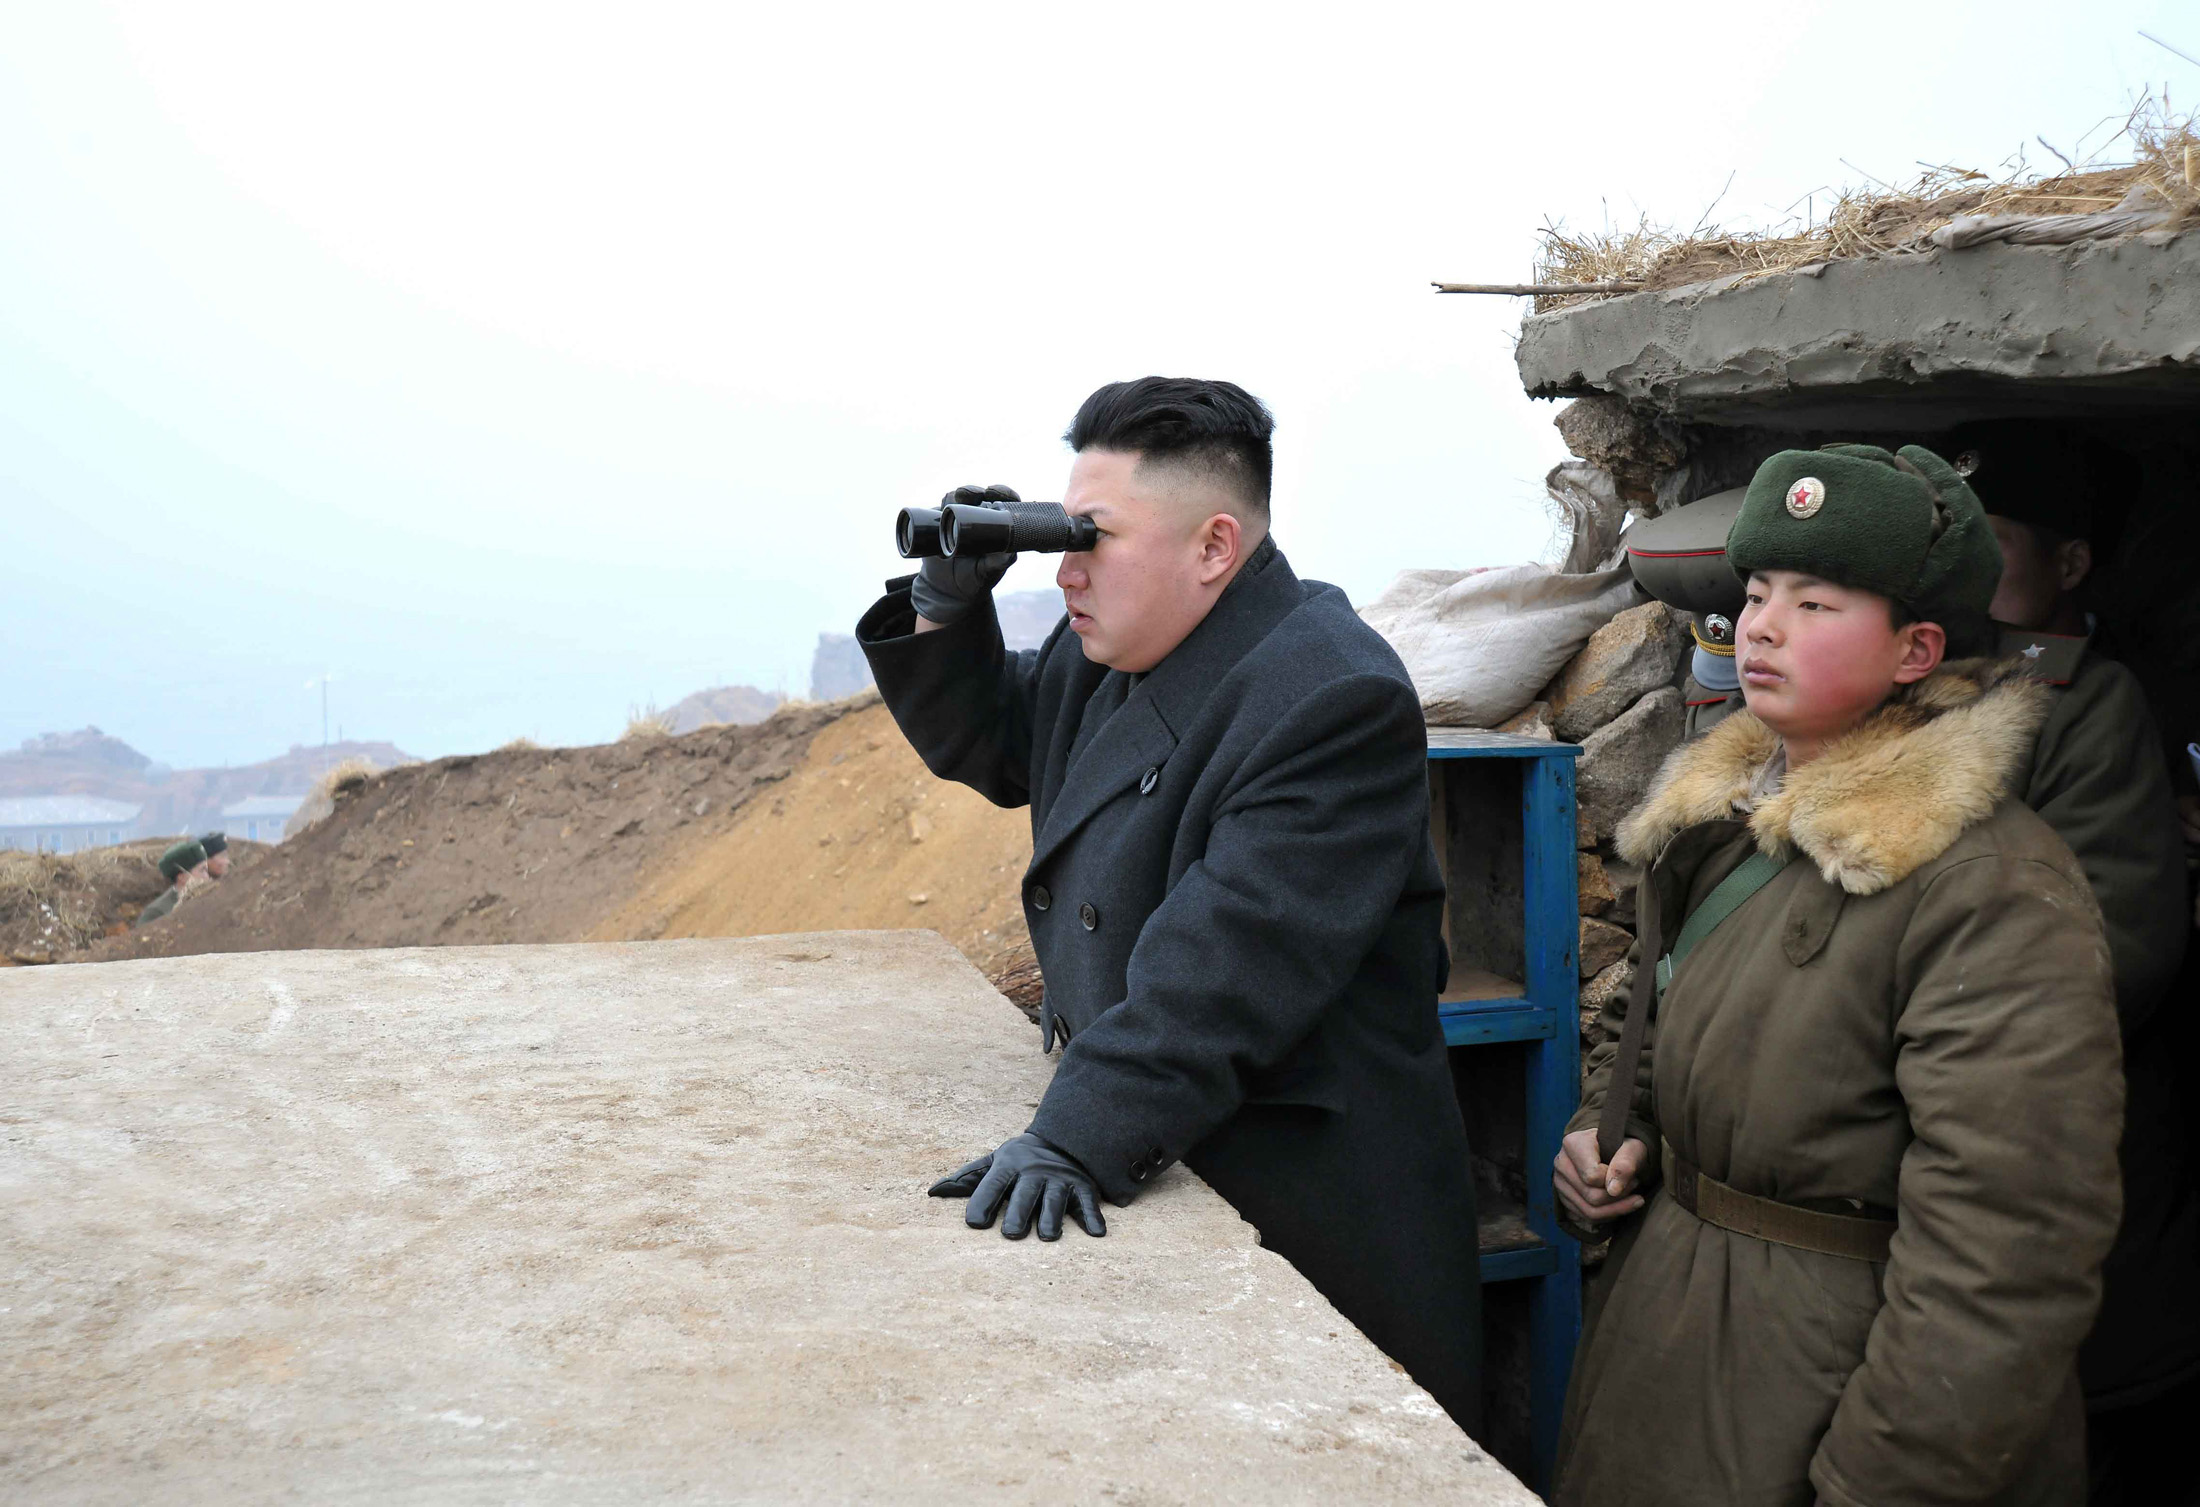 North Korean leader Kim Jong-Un looks over the border with South Korea,  March 7, 2013.